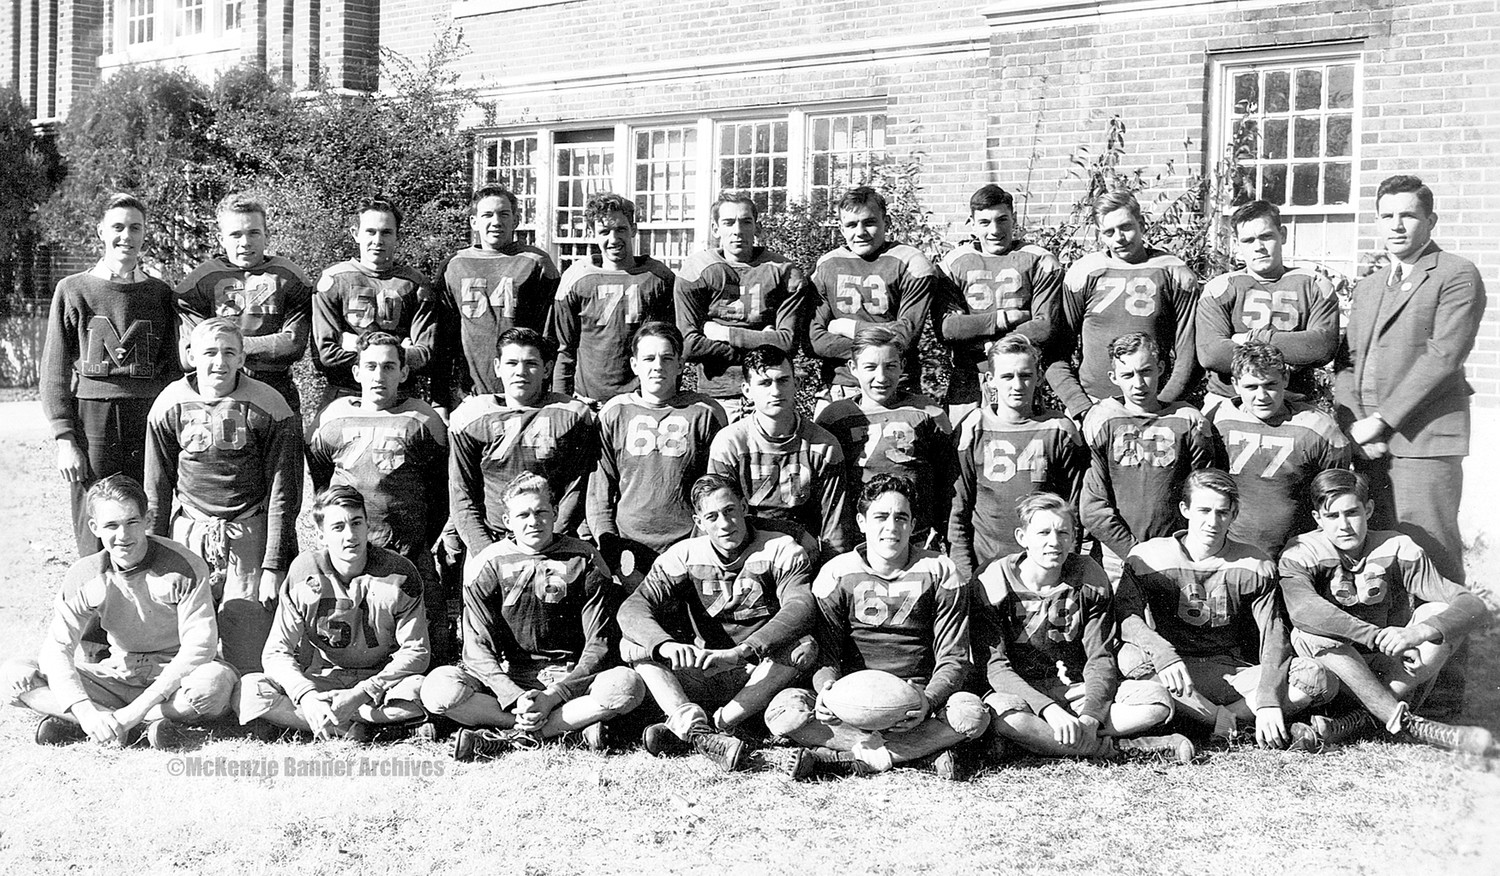 "1940-41 McKenzie High School Football Team - Front Row (L to R): J. B. Johnsonius, Norvell Headden, Doug McCadams, Lucian Nelson, Phillip Williams, R. L. Reynolds, Tommy Connley, Mack Buckley. Second Row (L to R): Frank White Garrett, Wilbur Headden, Howard Smith, Bob Pratt, Otis Dotson, Dan Childress, John Moseley, Paul Carroll, Charlie Simmons. Back Row (L to R): Mgr. Richard Ferguson, Bobby Cozart, Marion Hall Atkinson, Bob Harris, Mike Wilson, Paul Simpson, W.H. ""Bill"" Brush, James Oliver Akers, Charles ""Pappy"" Steele, Bill Brooks, Coach Norman McKenzie."